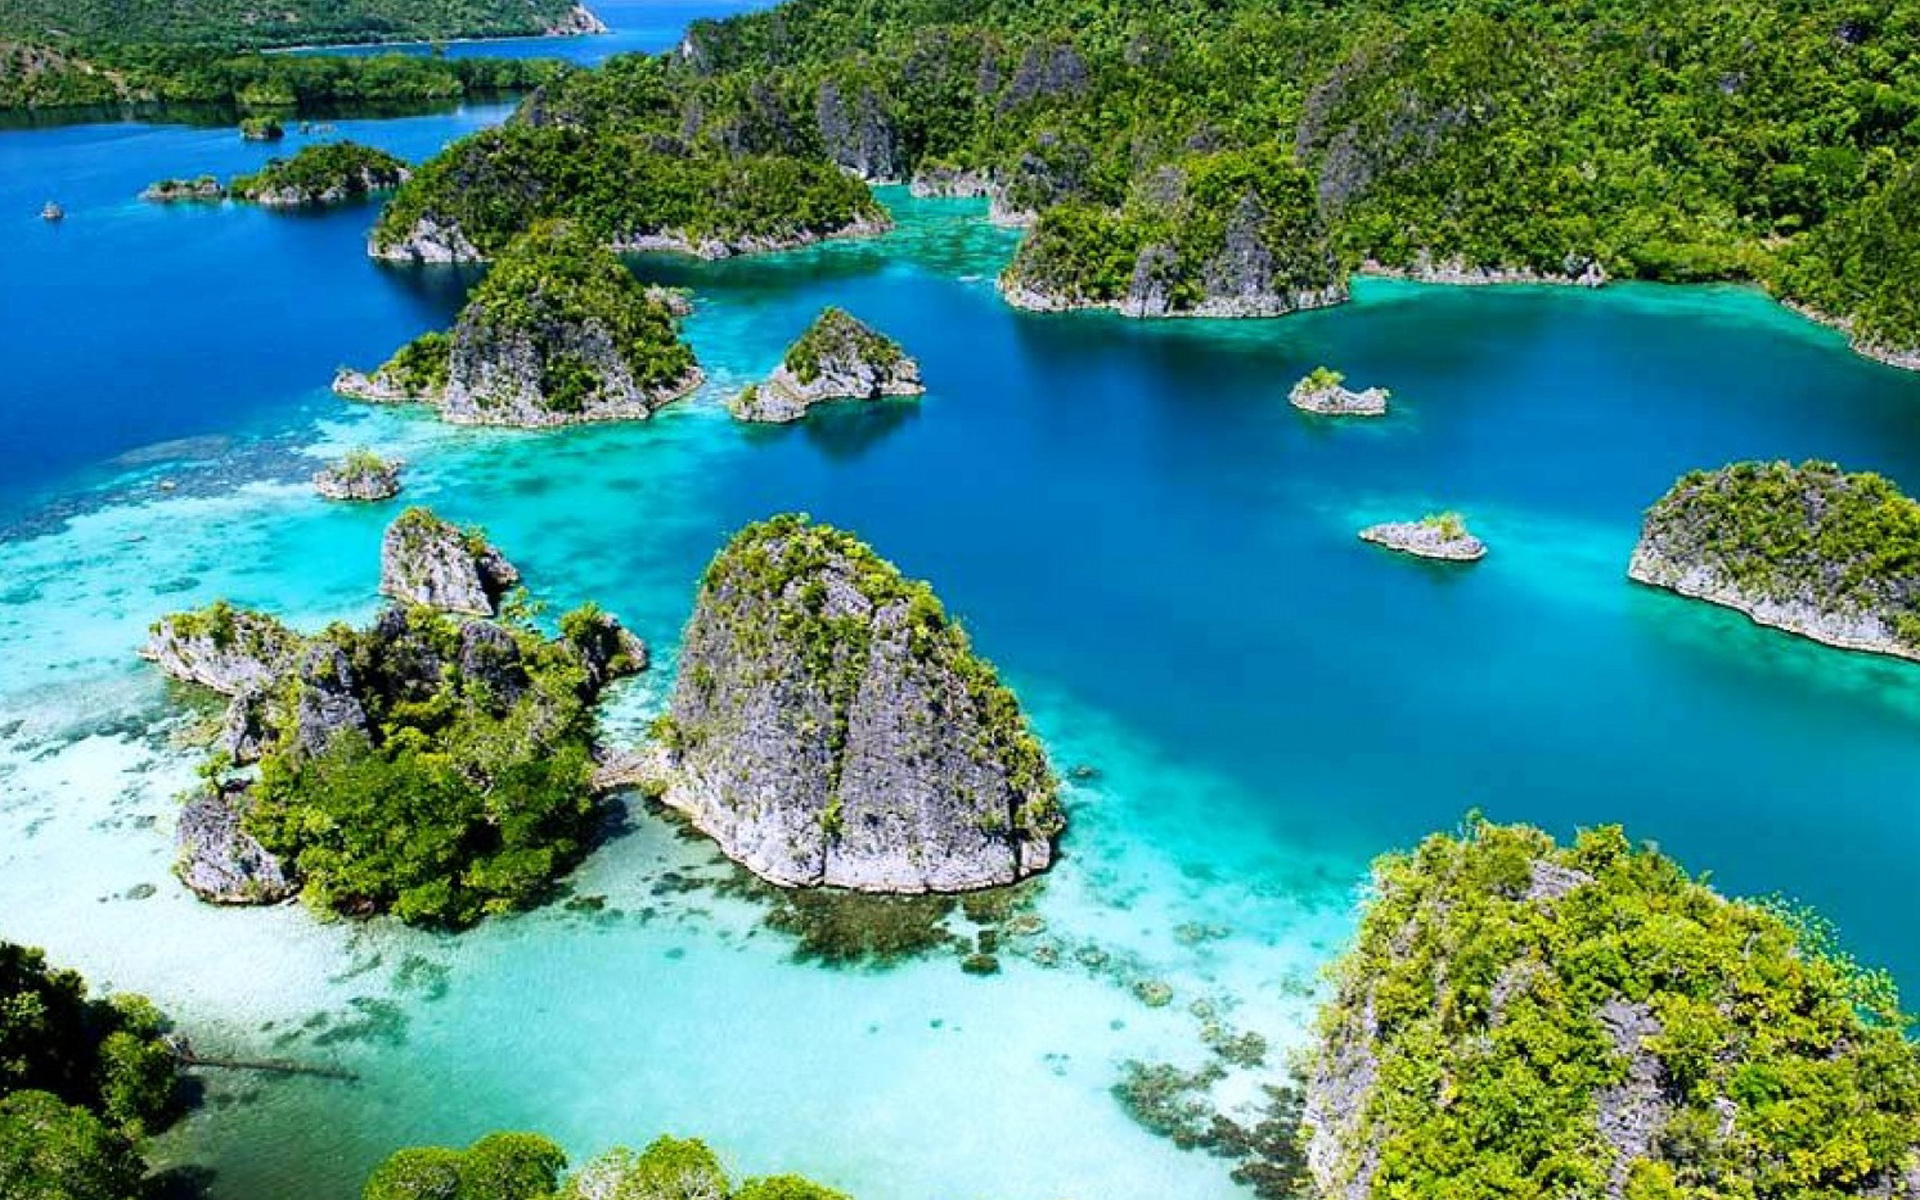 Fall Wooden Wallpaper Raja Ampat Indonesia Tropical Islands With Green